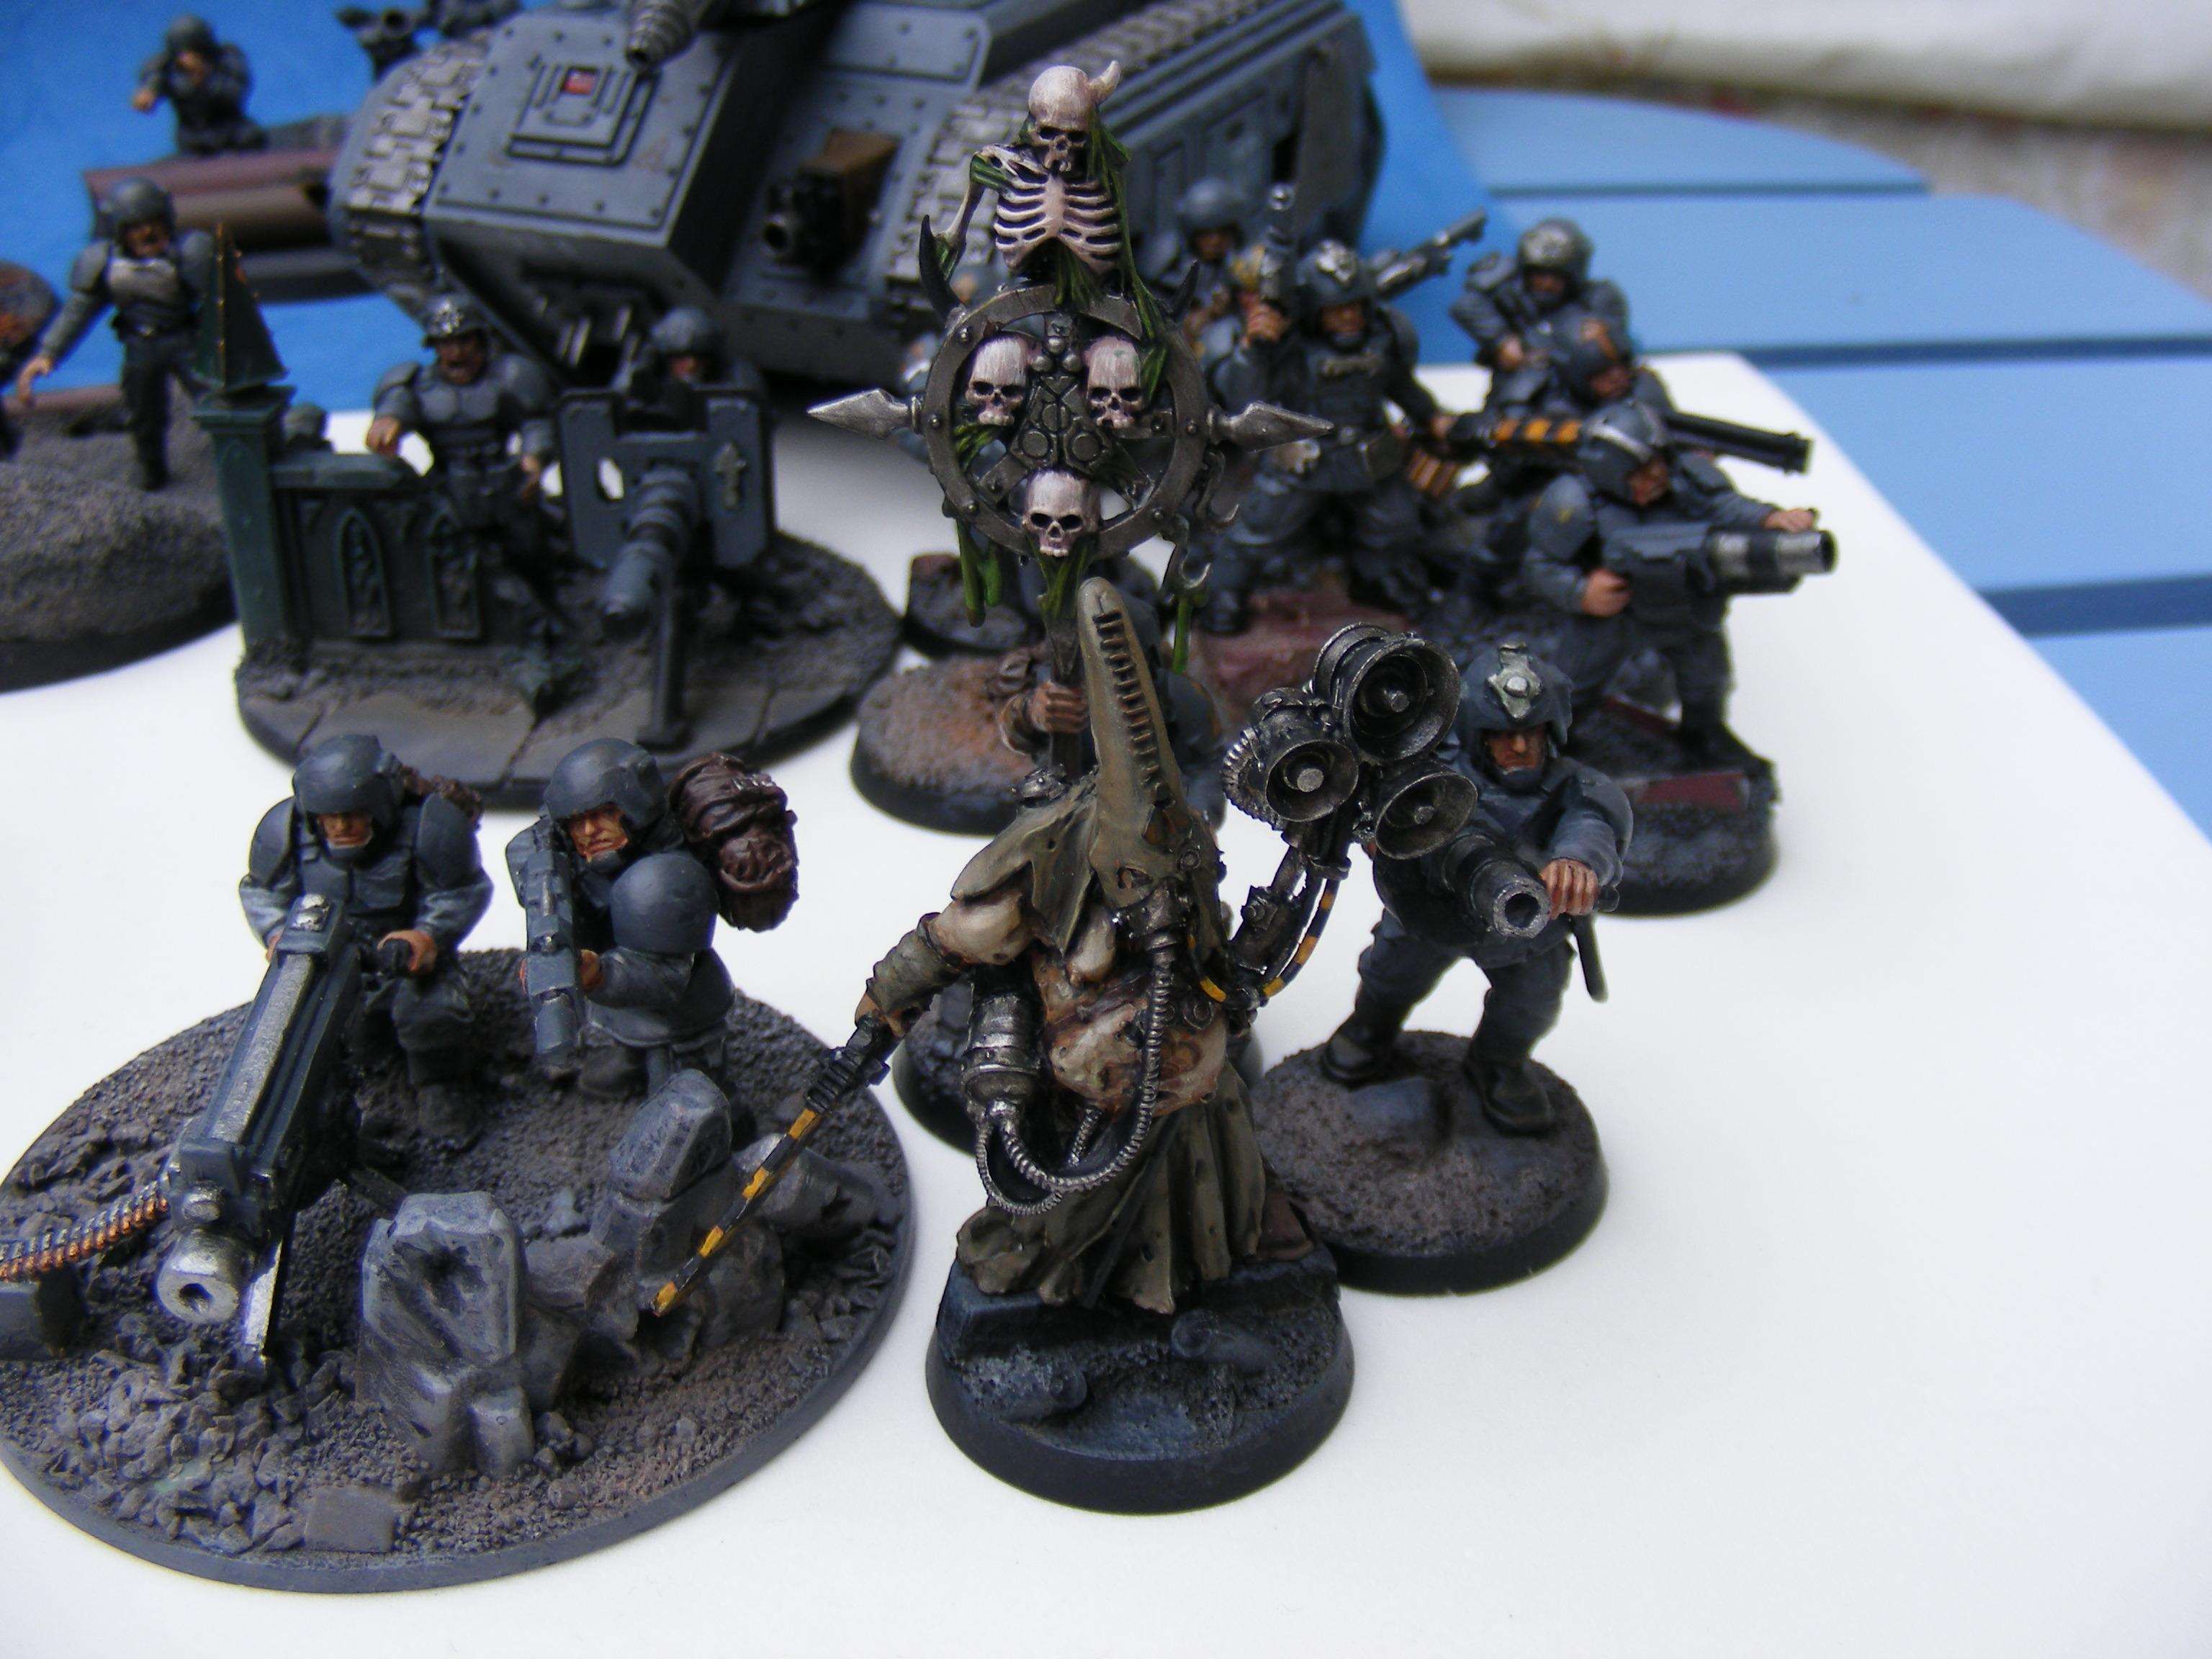 Chaos, Cultists, Imperial Guard, Lost And The Damned, Nurgle, Renegades, Traitor, Traitor Guard, Warhammer 40,000